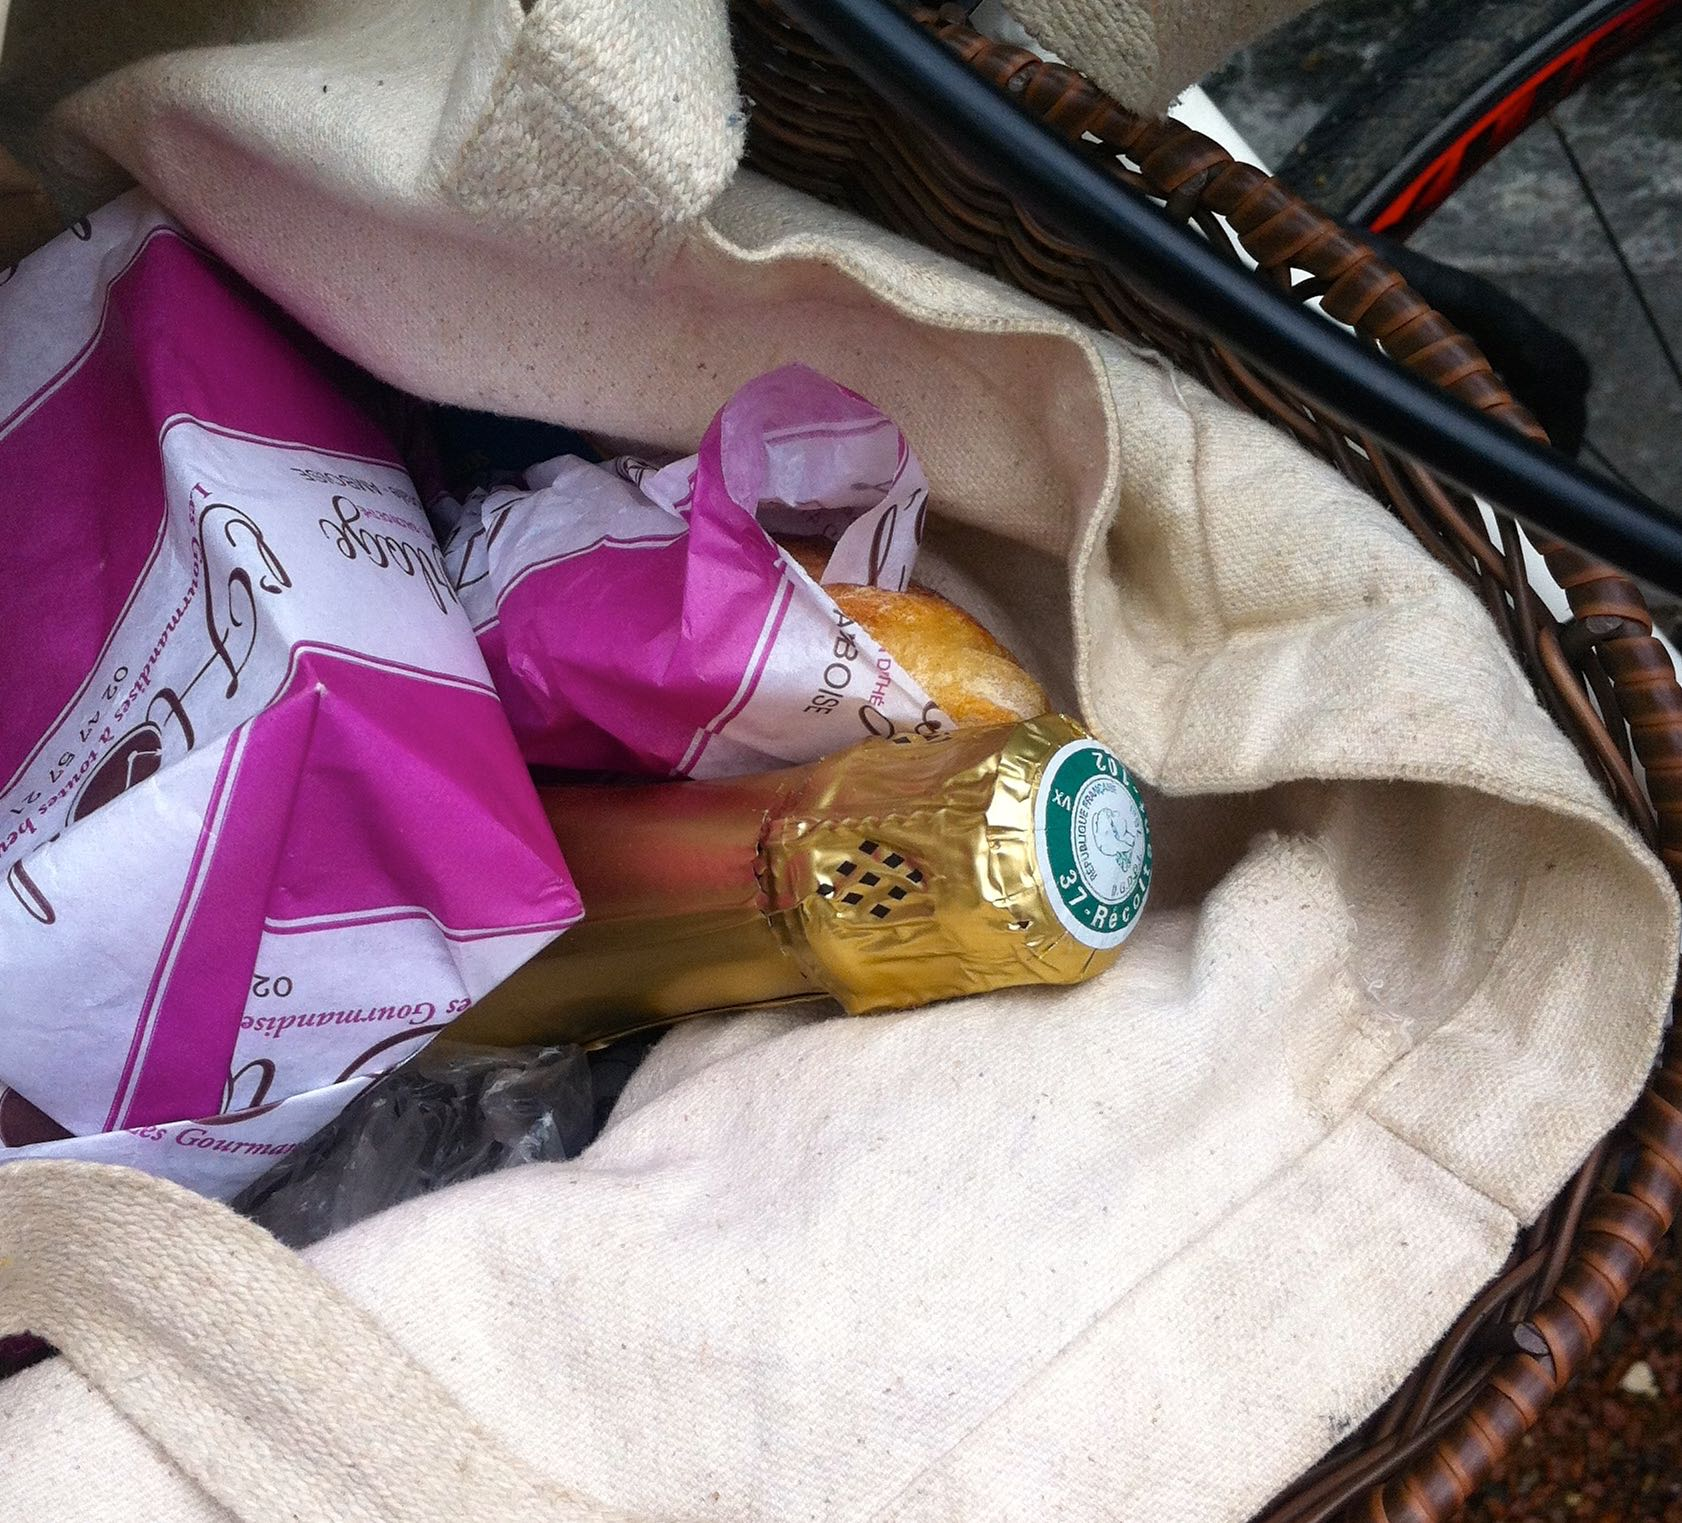 A VOUVRAY IN THE BASKET